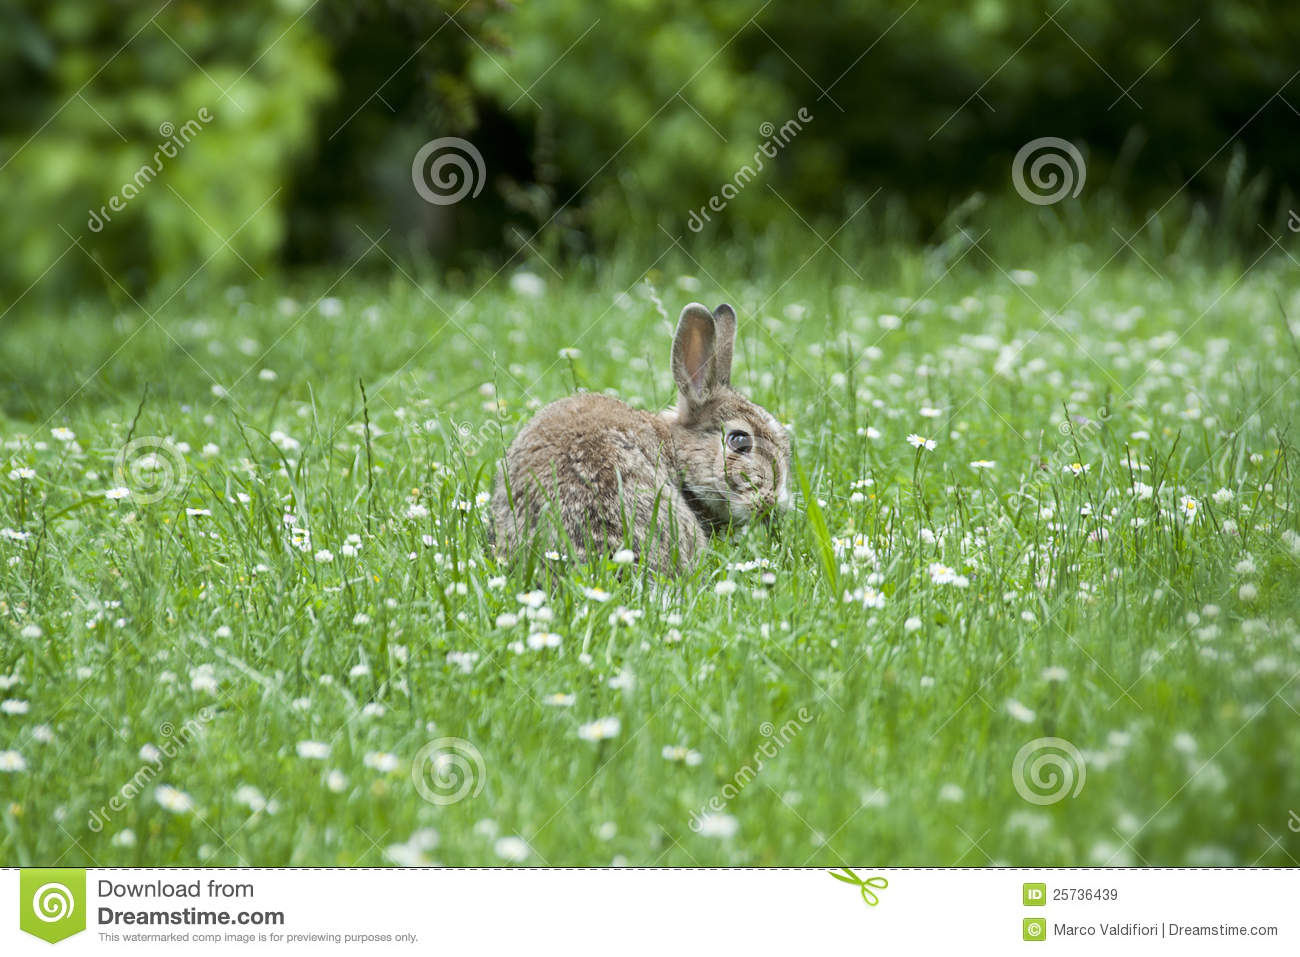 A rabbit among the daisies